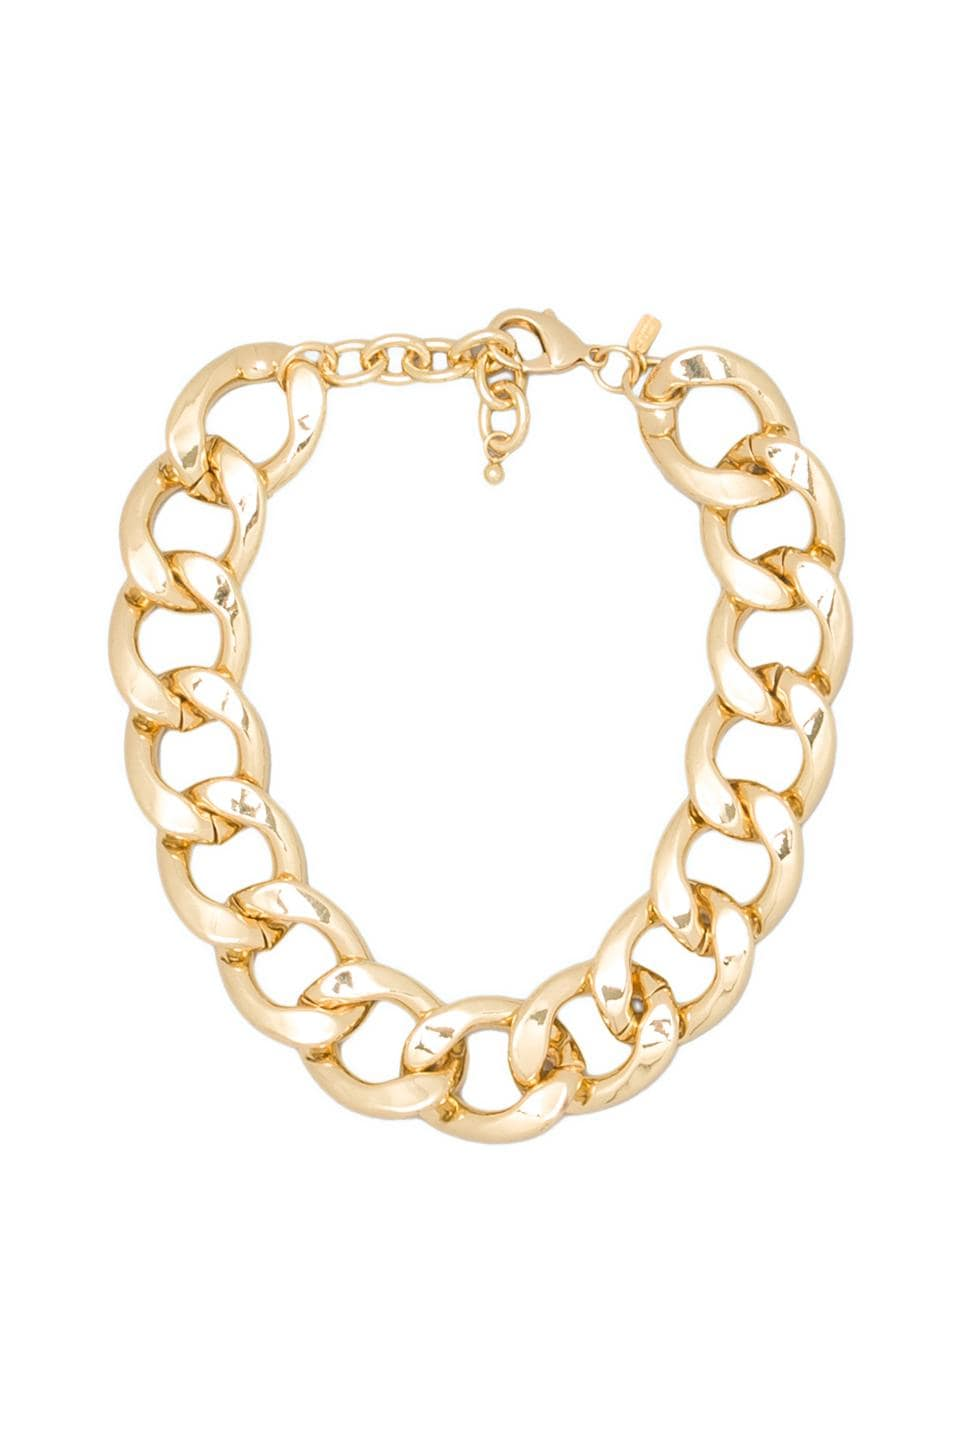 Kenneth Jay Lane Large Flat Link Lobster Claw Clasp Necklace in Polished Gold